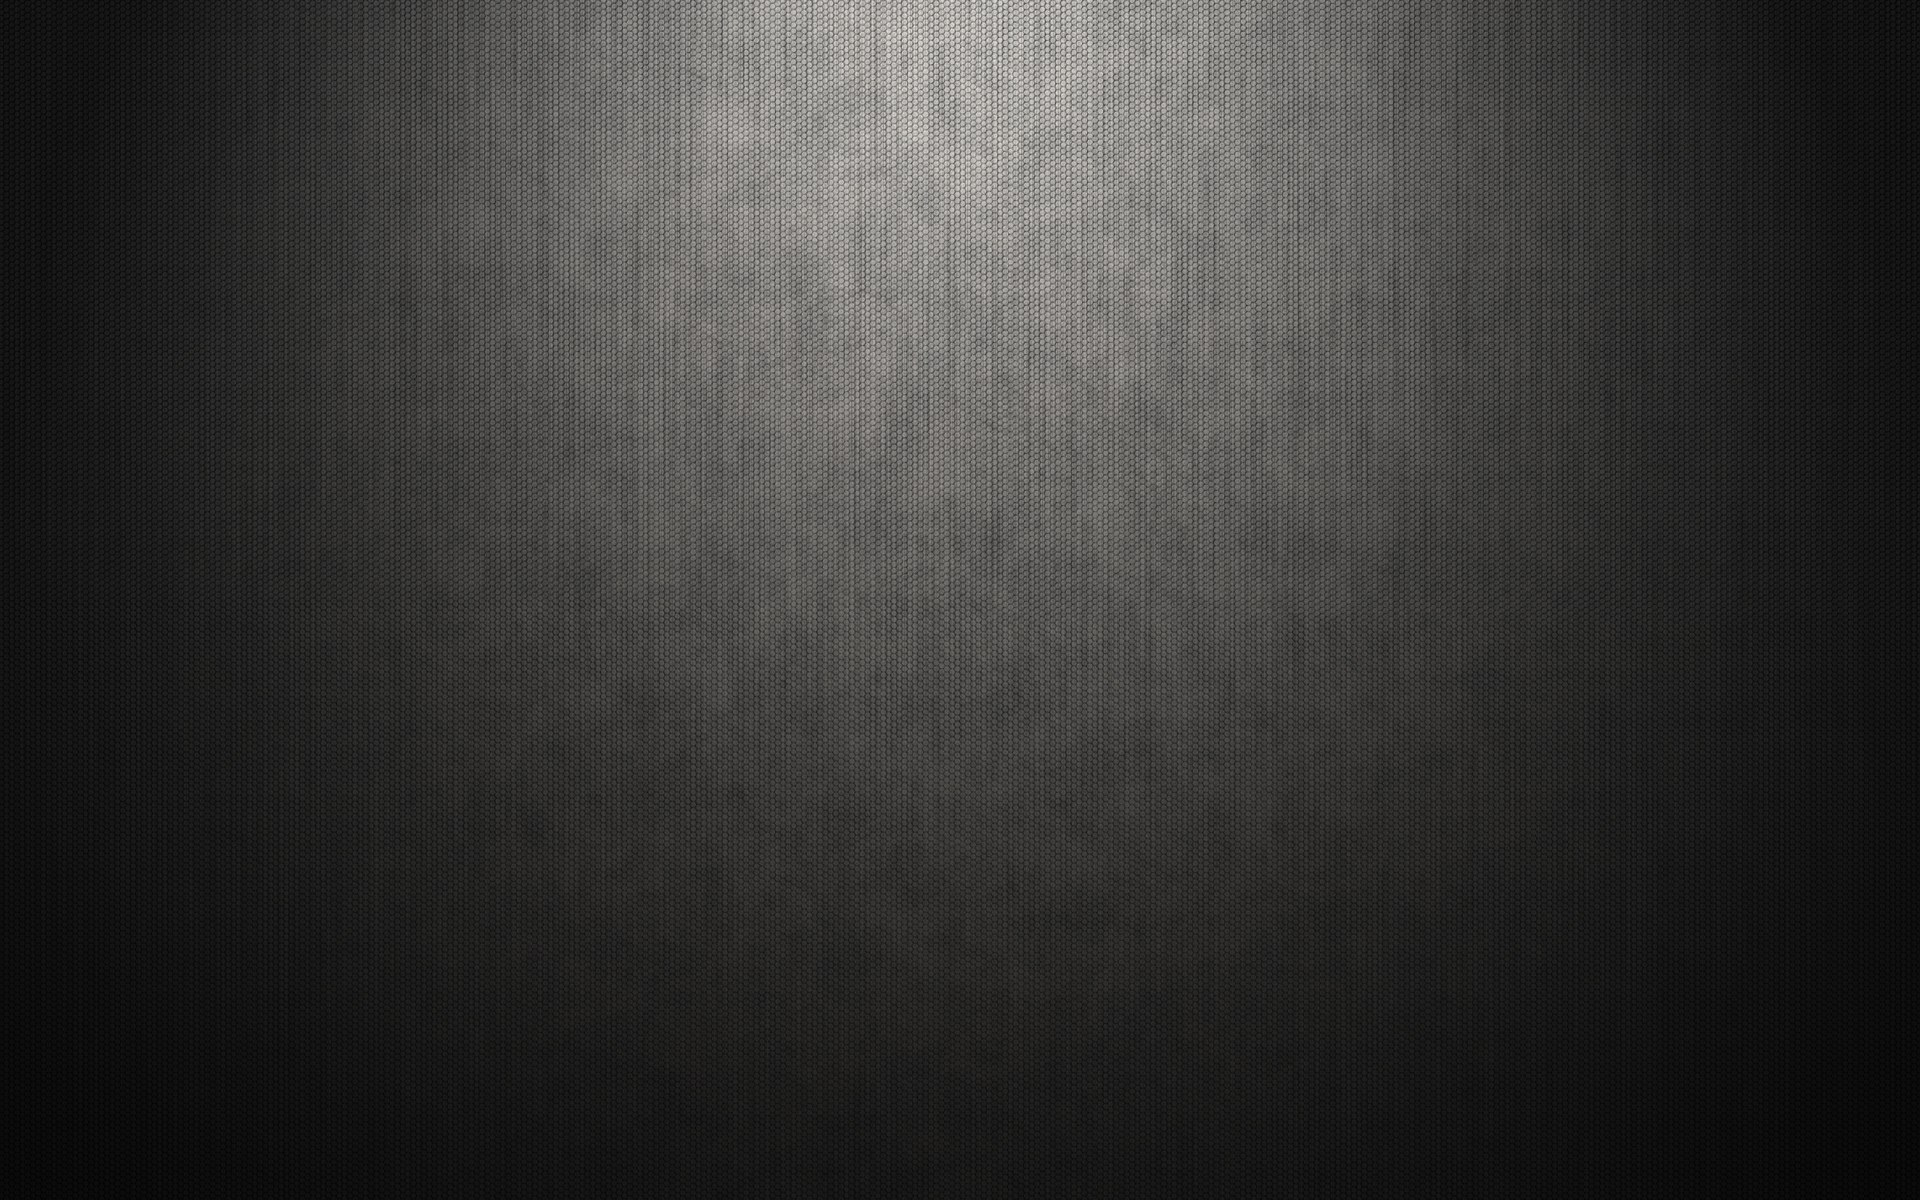 dark textured backgrounds 18626